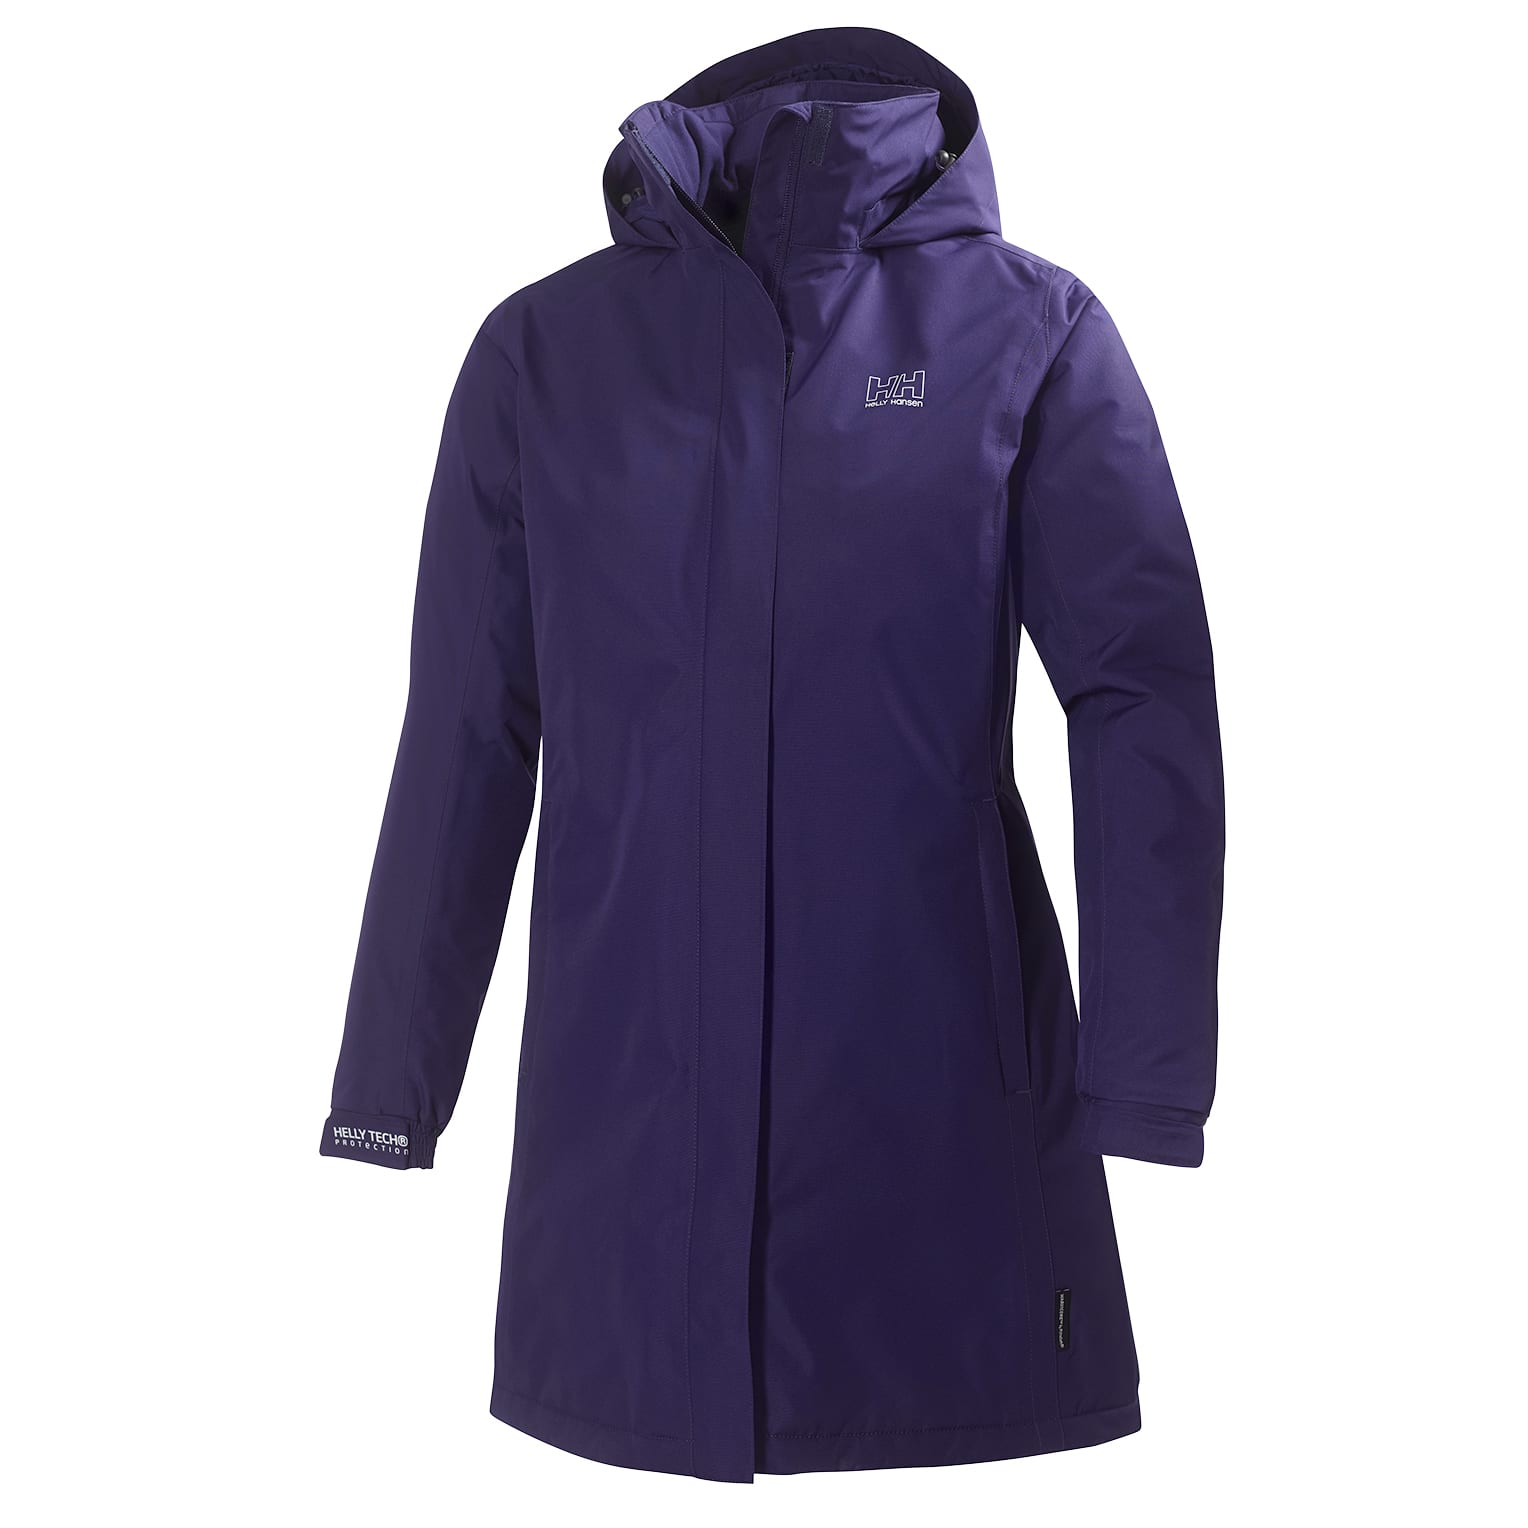 Buy Helly Hansen Women's Aden Long Insulated from Outnorth